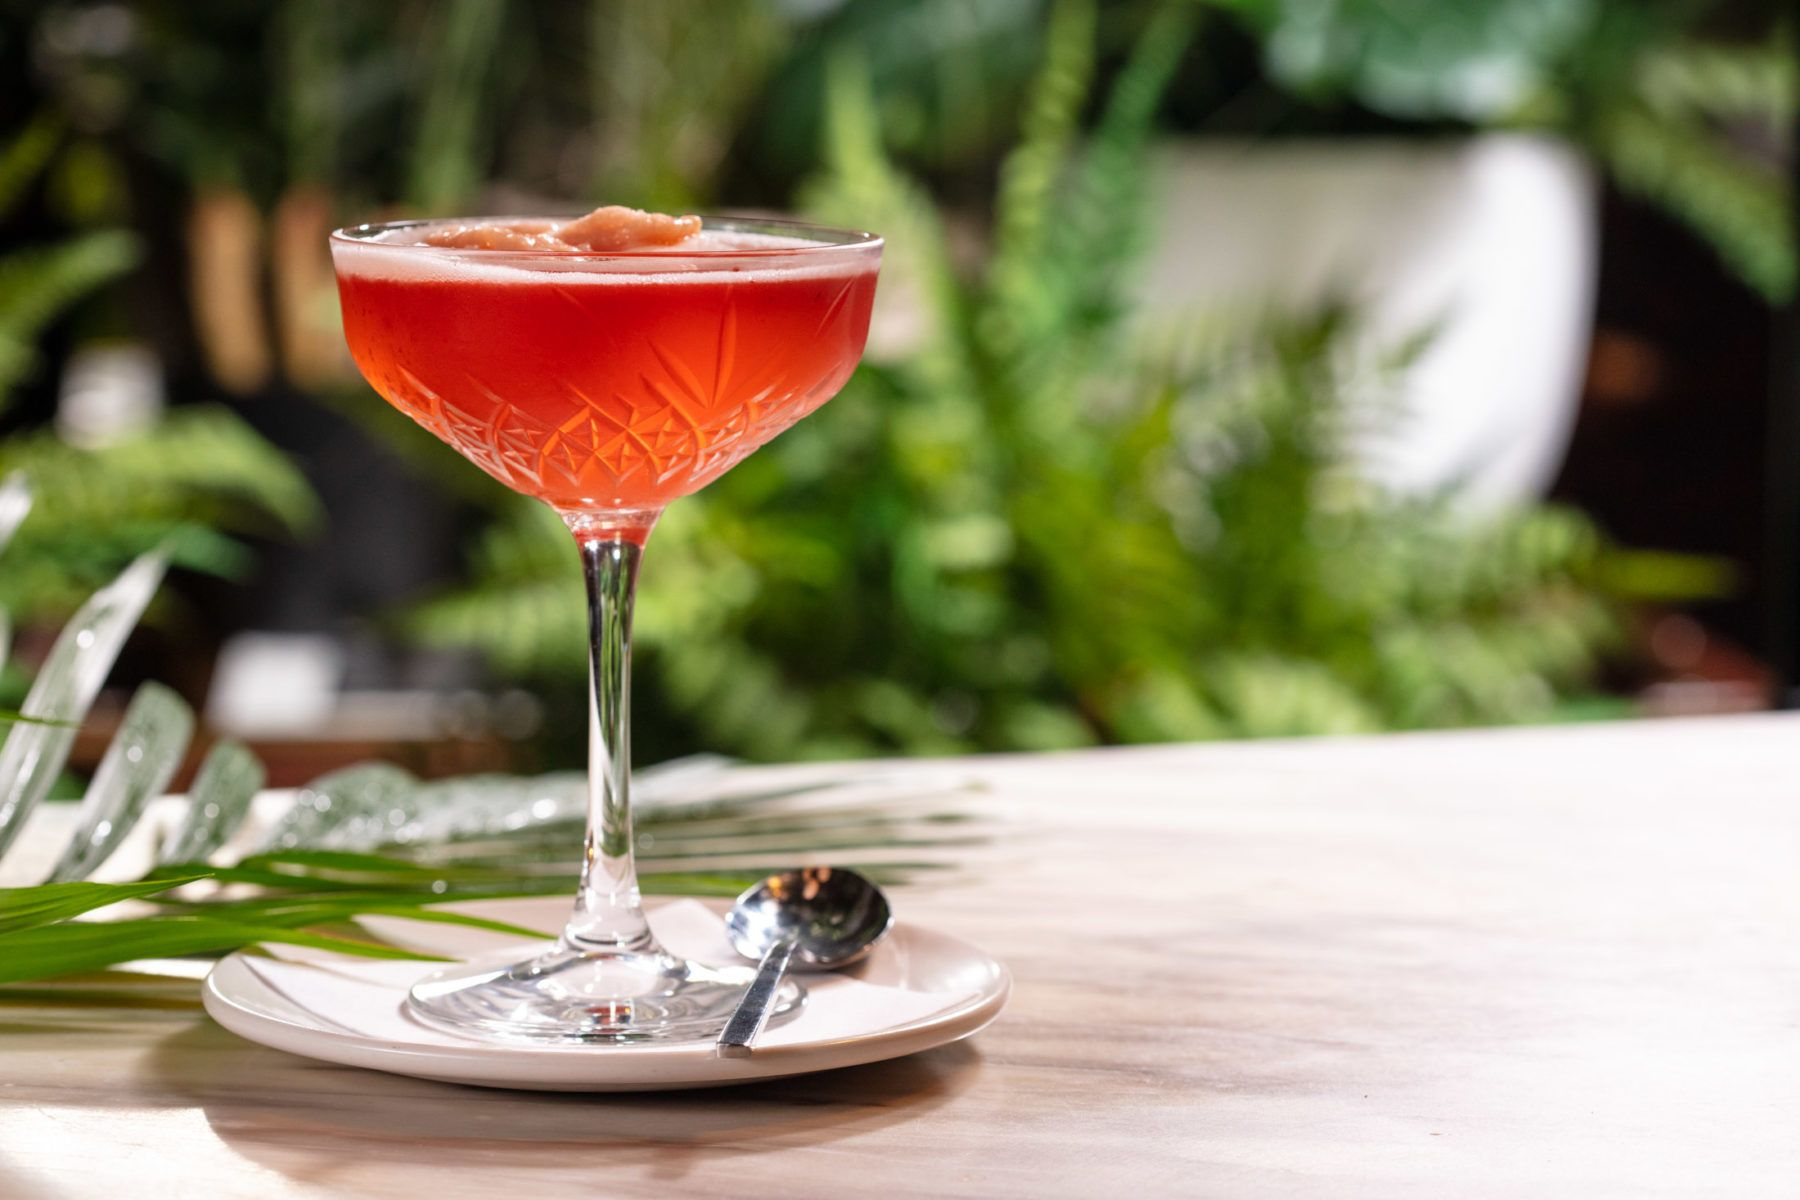 Red cocktail in crystal coupe glass